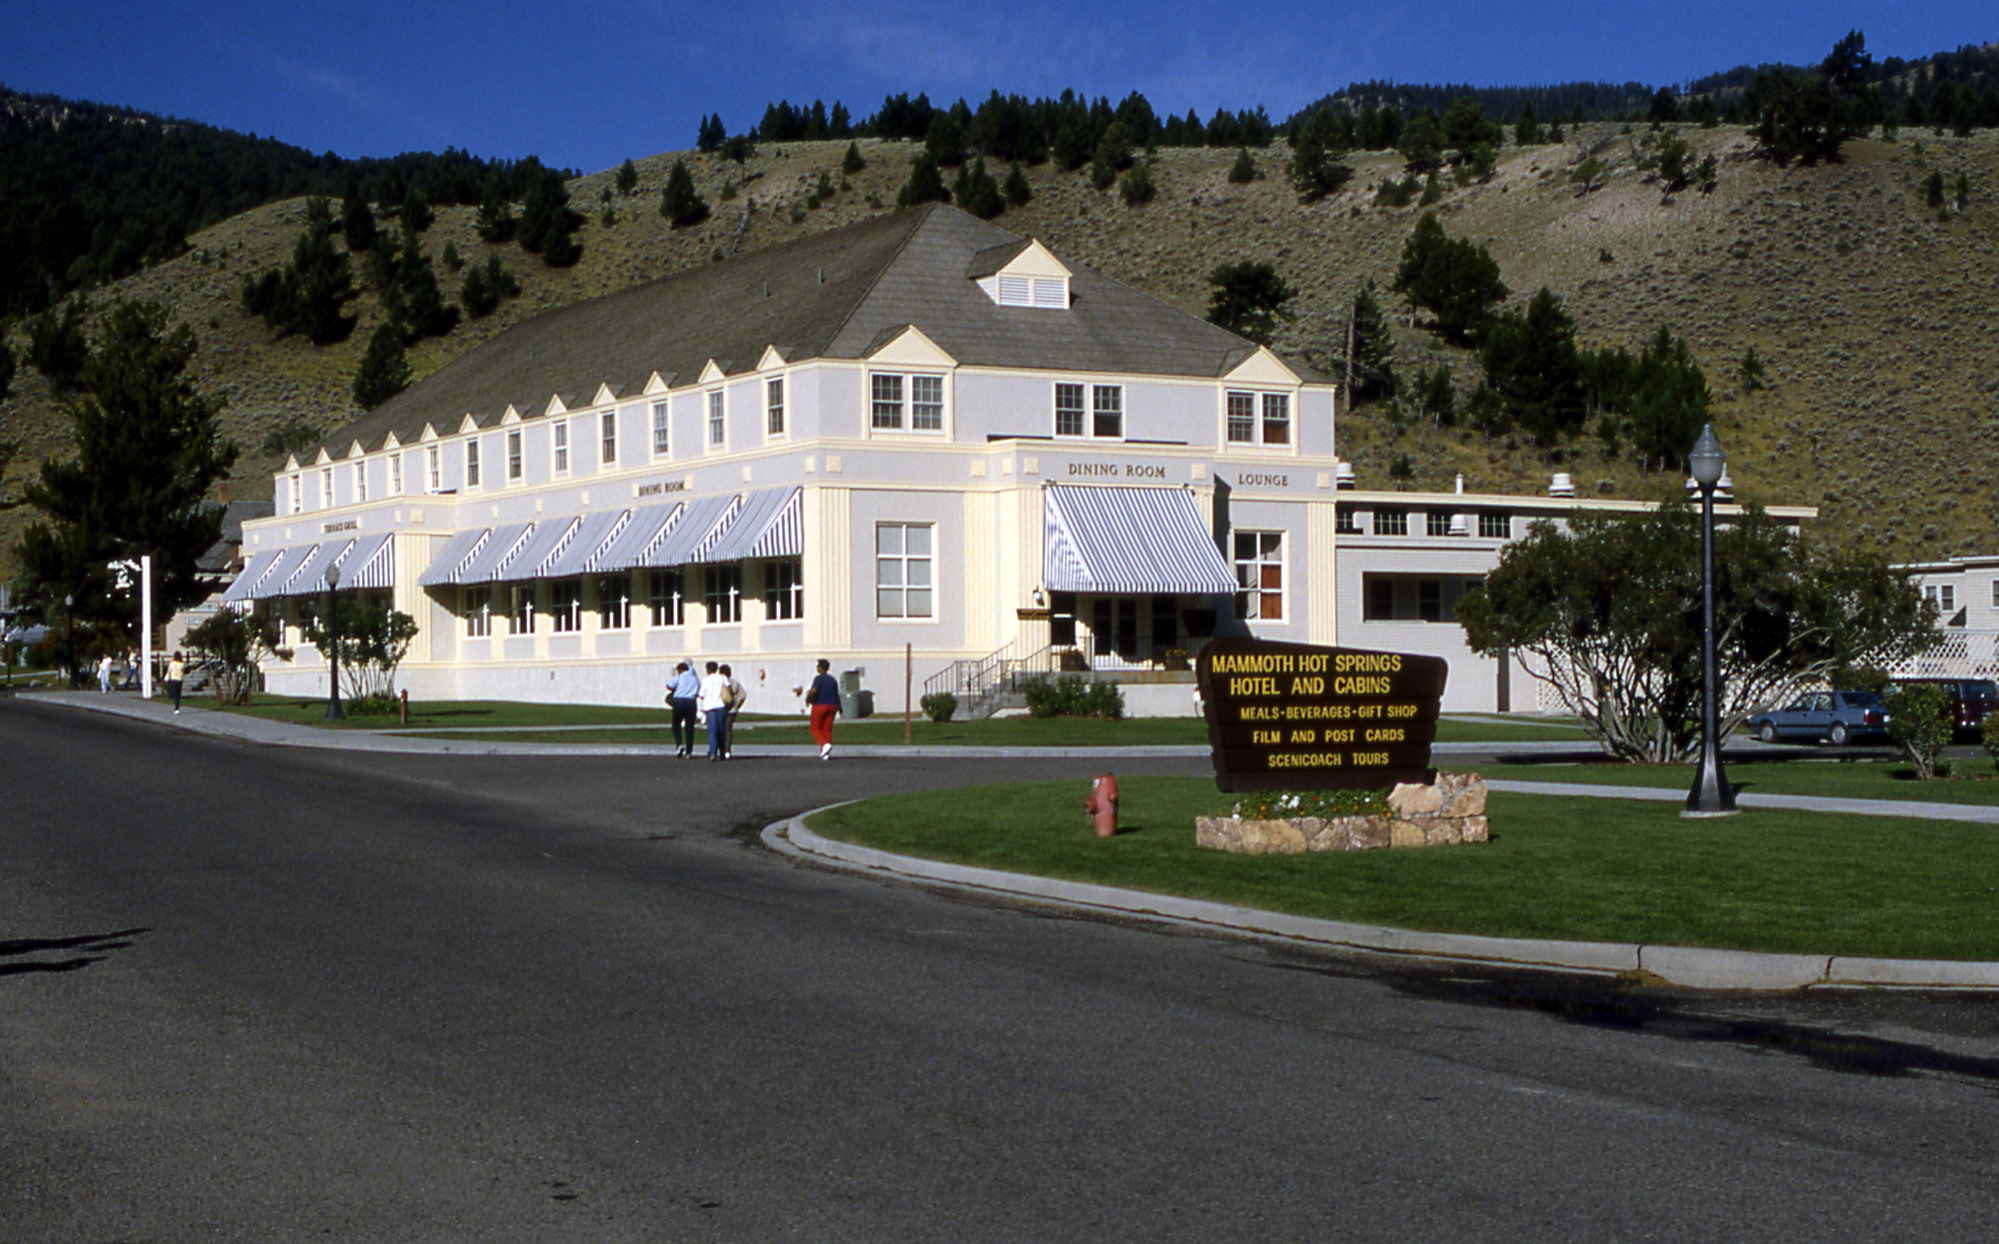 yellowstone's photo collection